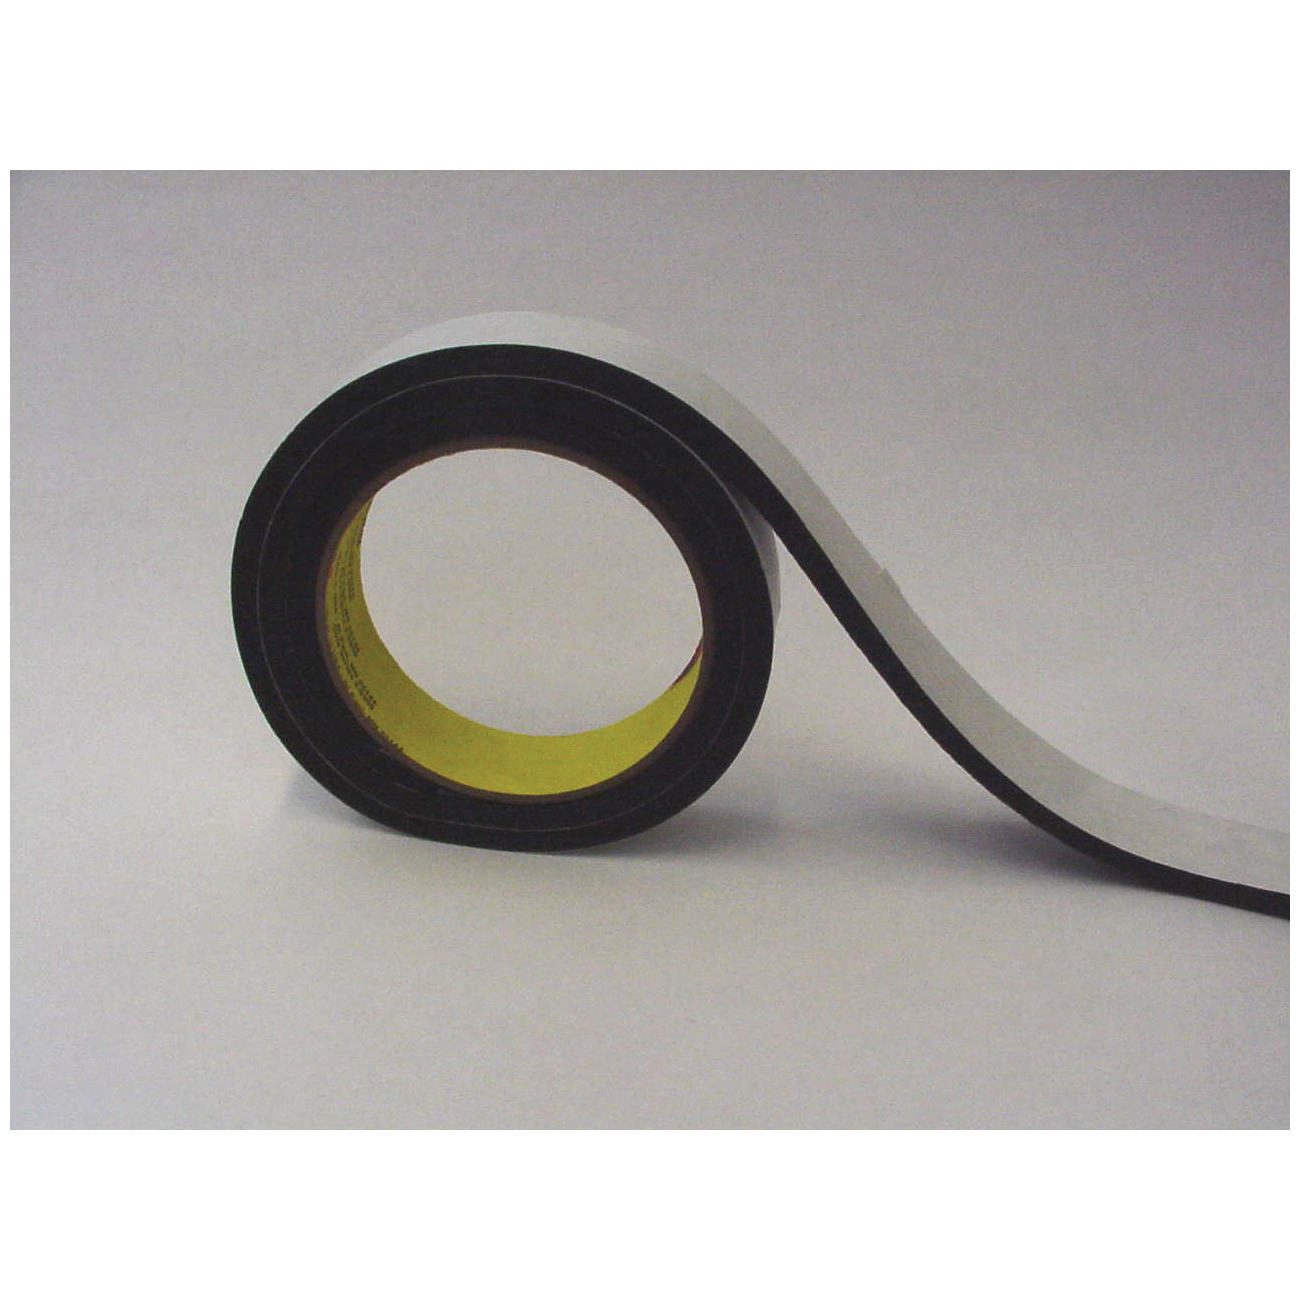 3M™ 051131-06471 Single Coated Foam Tape, 18 yd L x 1/2 in W, 250 mil THK, Acrylic Adhesive, Vinyl Foam Backing, Black